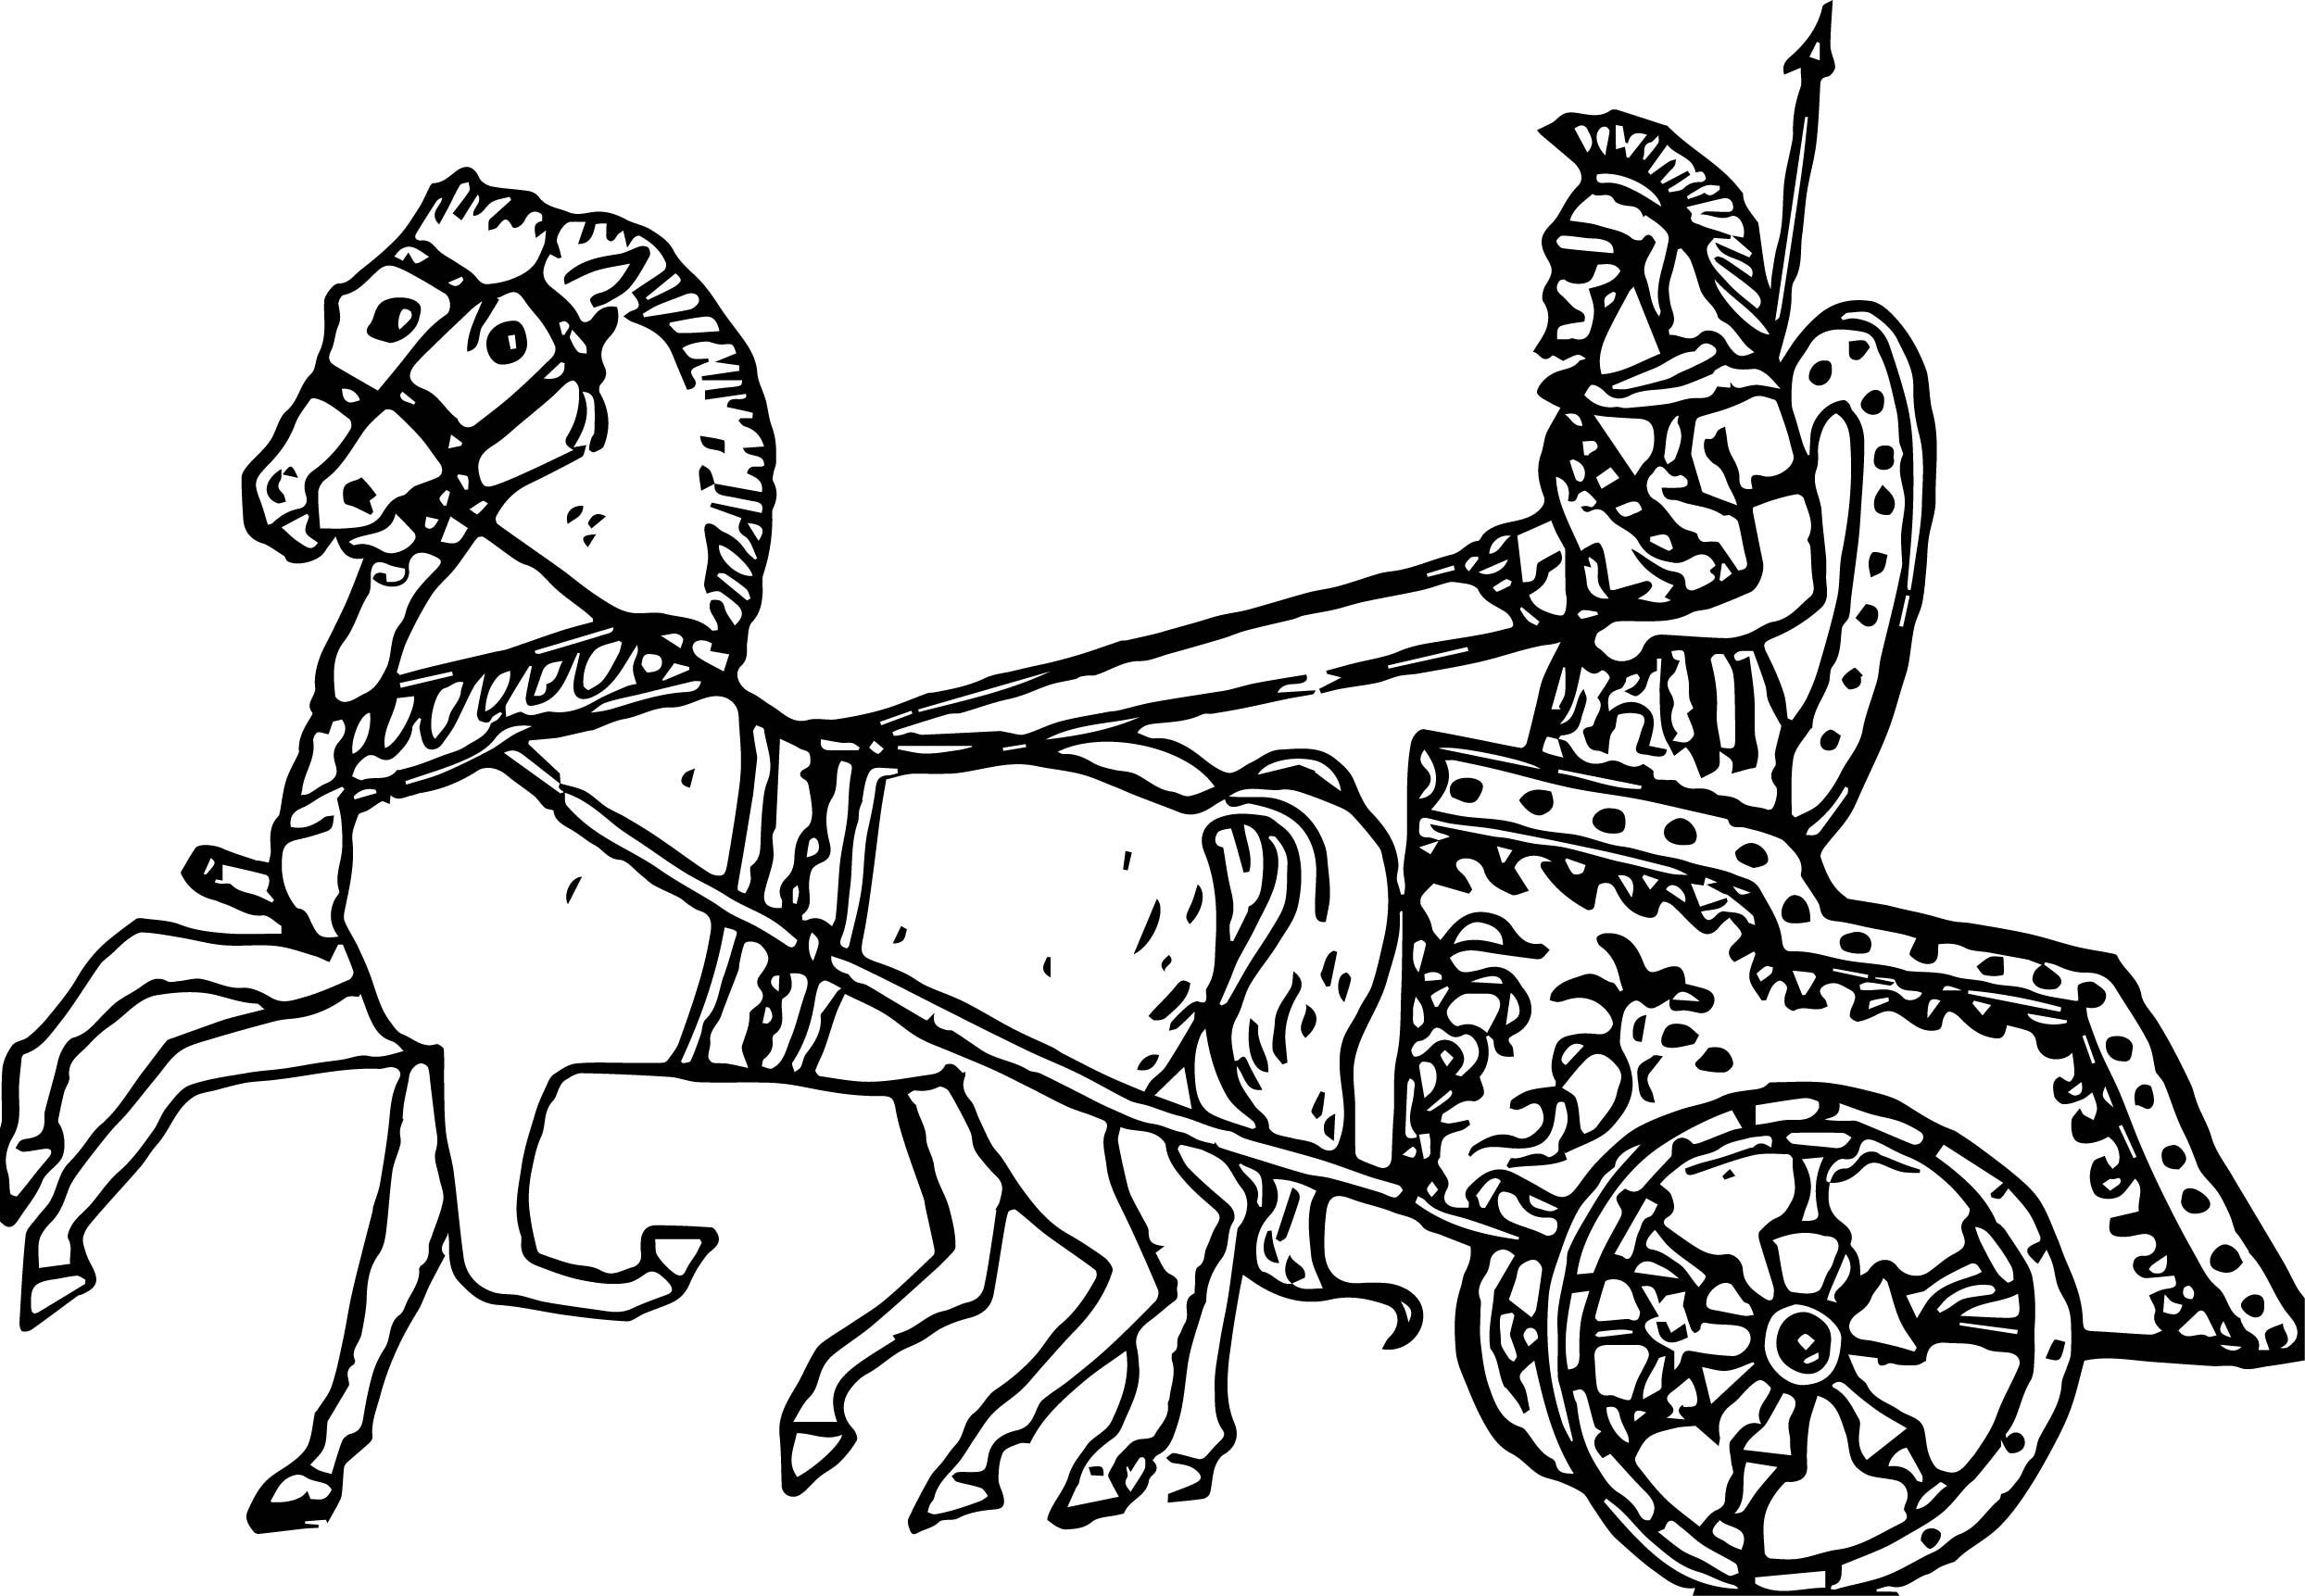 Ancient Roman Chariot Racing Coloring Page In 2020 Roman Chariot